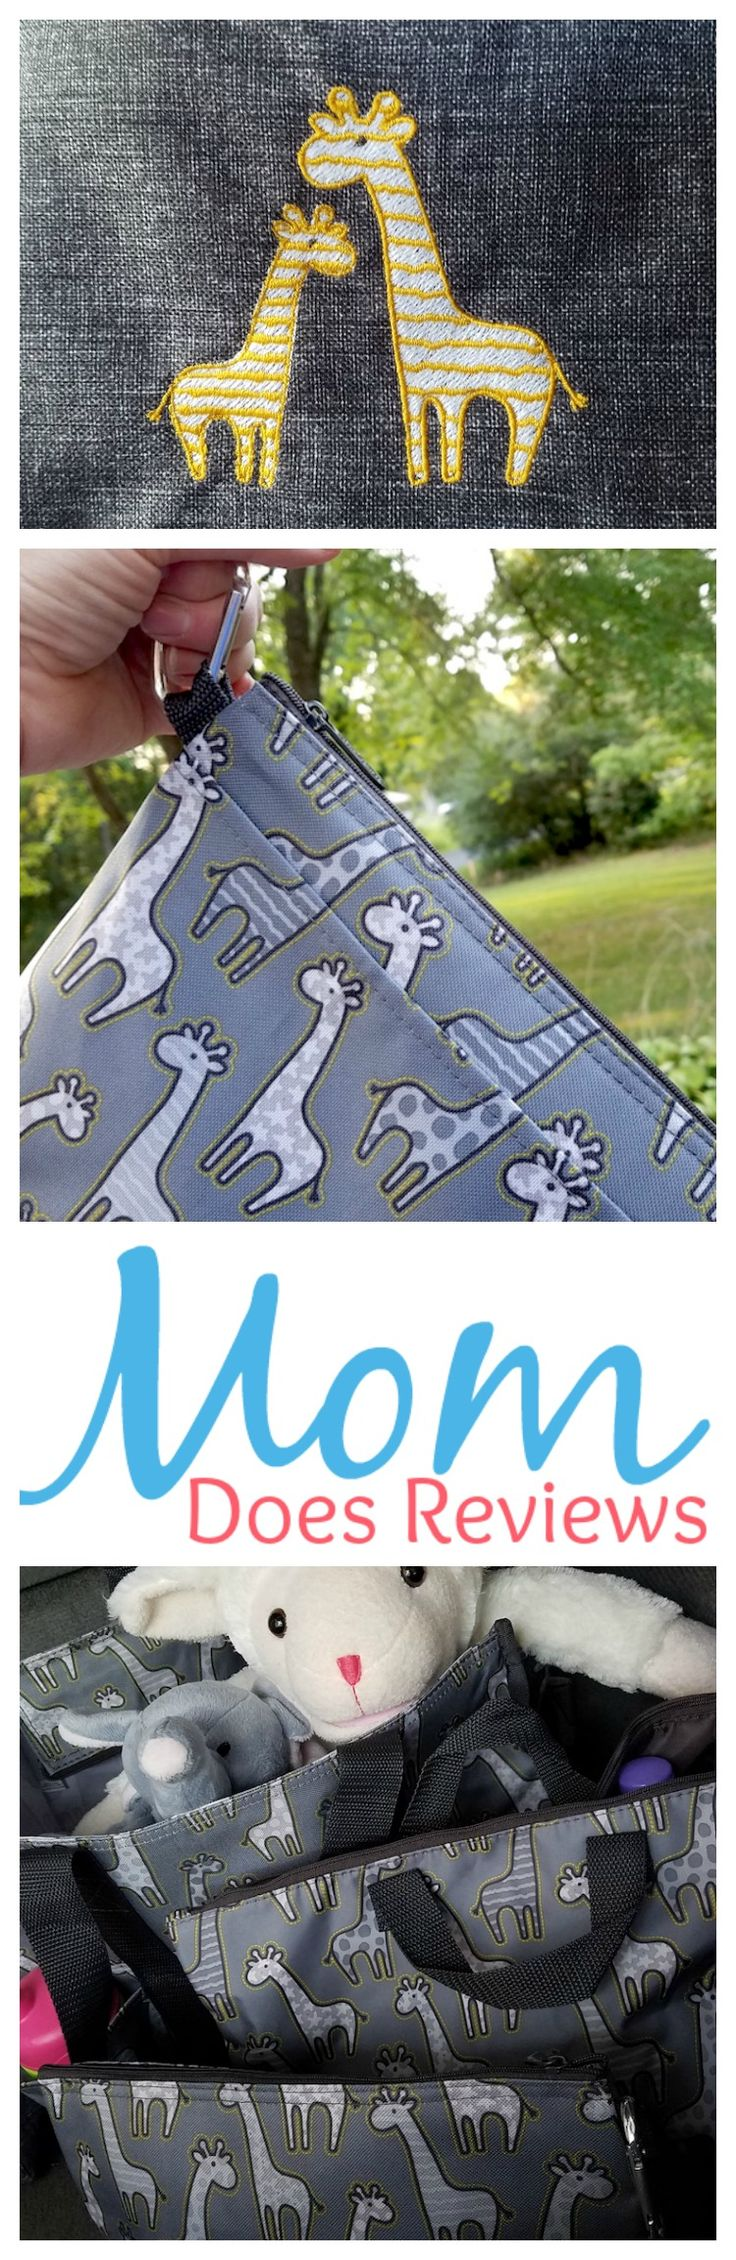 Thirty-One has also noticed the love for giraffes that has exploded this year. They have come out with an absolutely adorable giraffe print. How fitting is it that the print is used on their bags for babies!?!